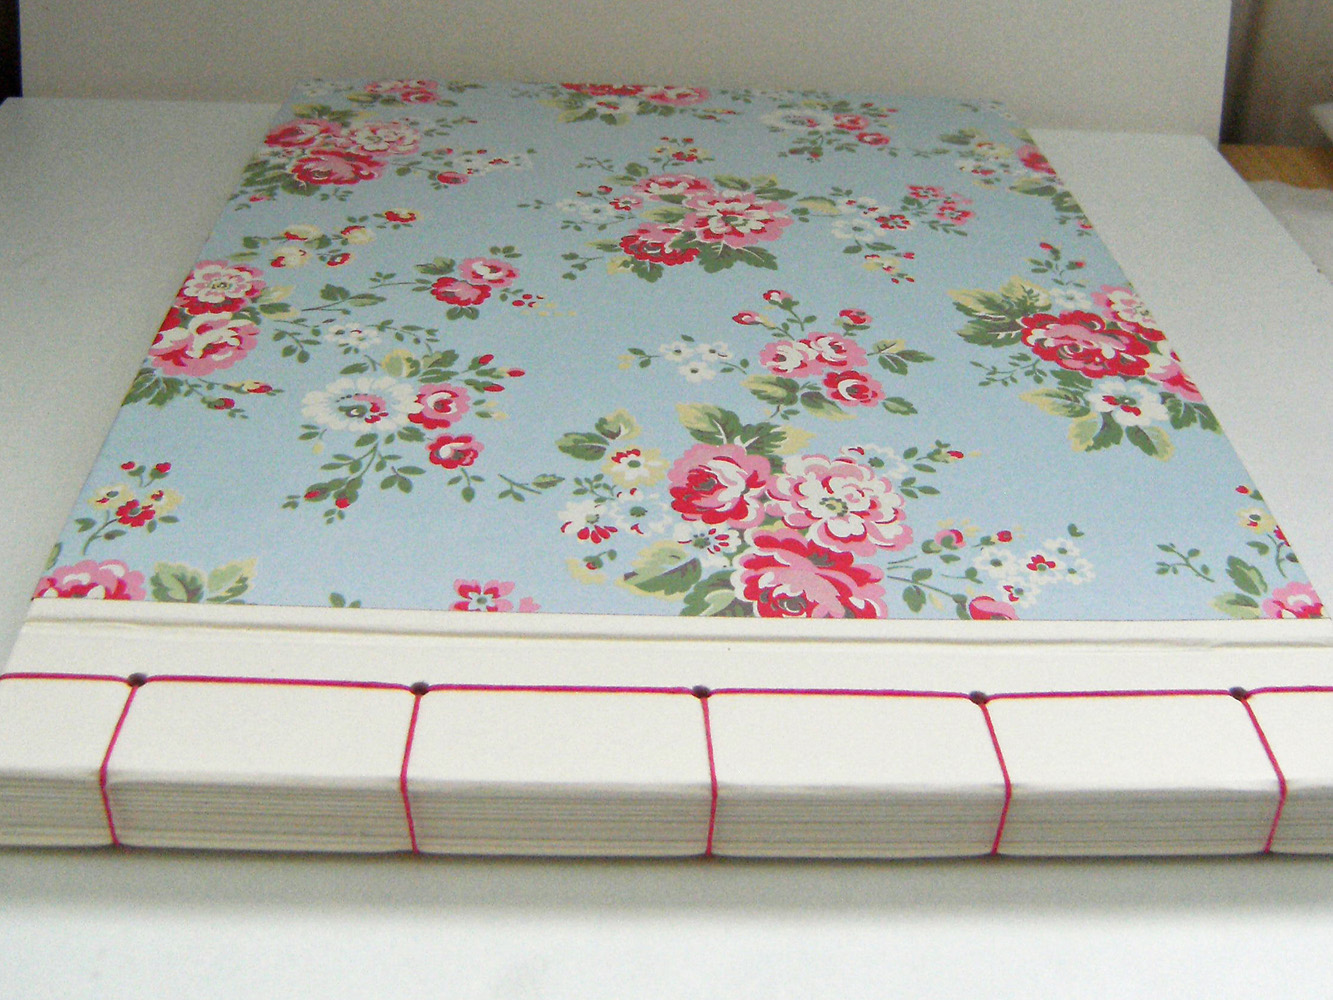 the book measures 1175 x 874 approx a4 size it has a japanese style stab stitch binding in bright pink waxed linen thread the bound edge and inside